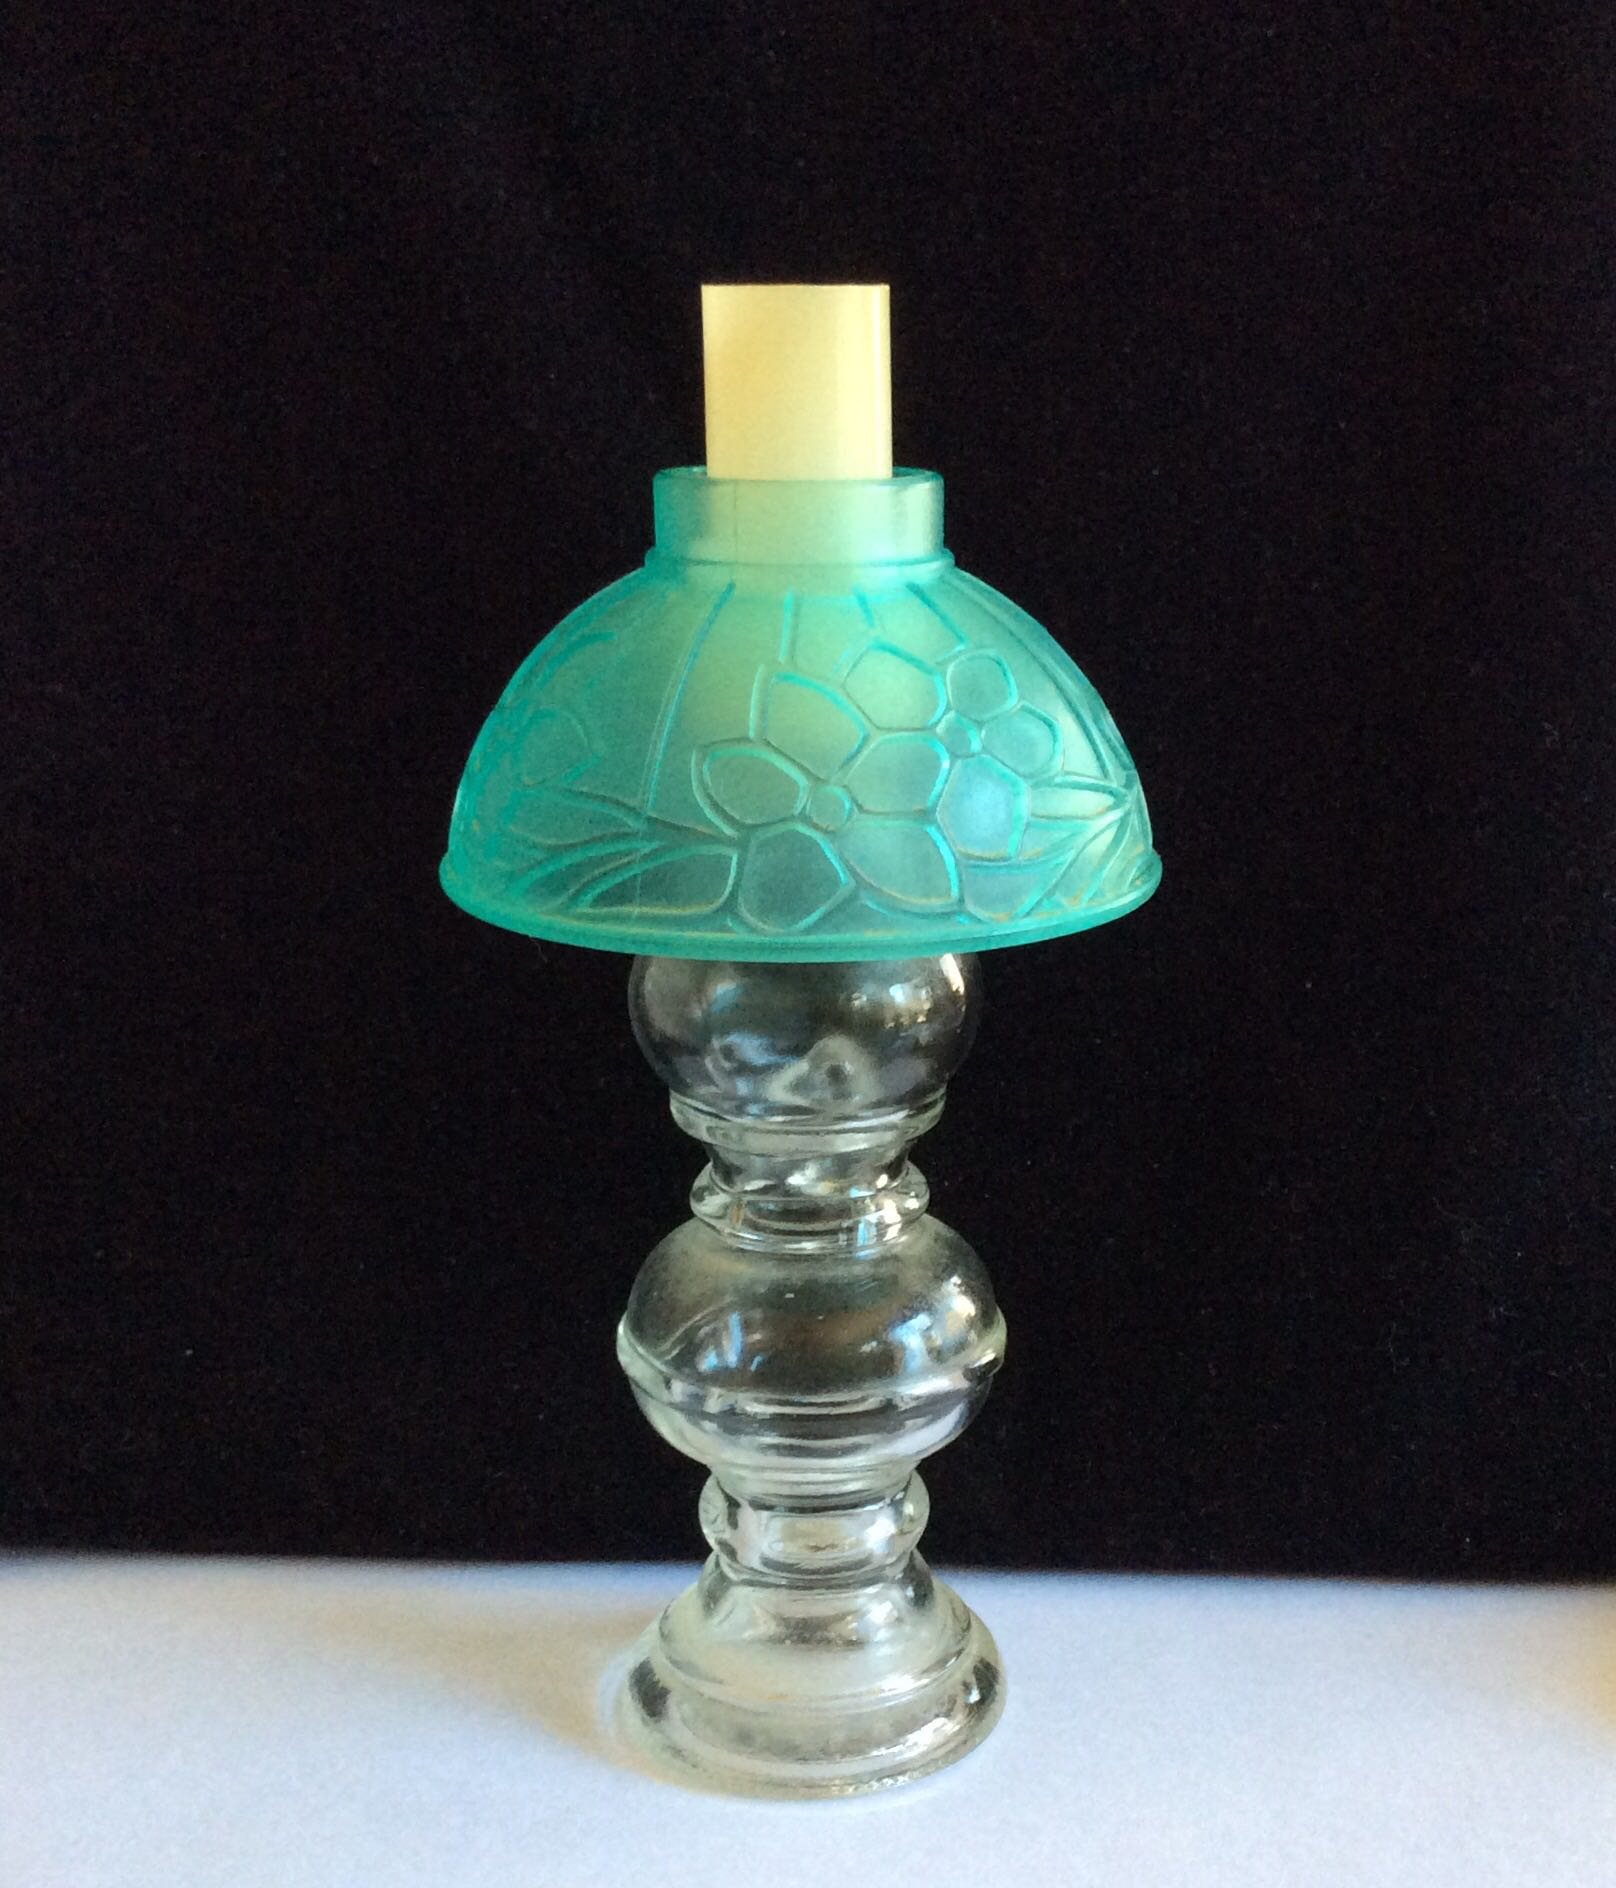 Verrassend Best Vintage Avon Oil Lamp Perfume Bottle for sale in Ajax LG-47